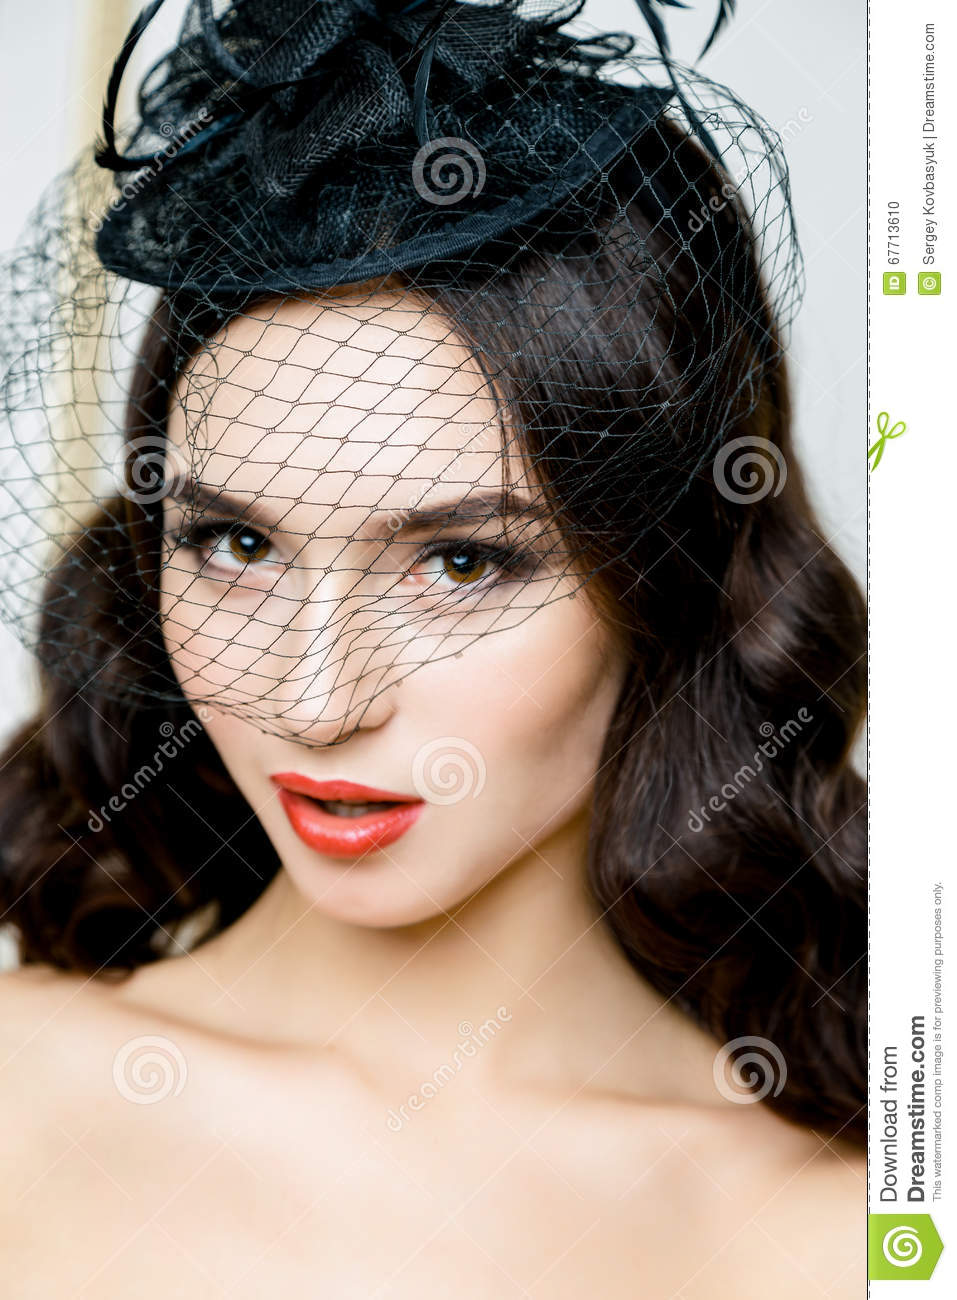 Retro Woman Portrait Vintage Style Girl Wearing Old Fashioned Hat